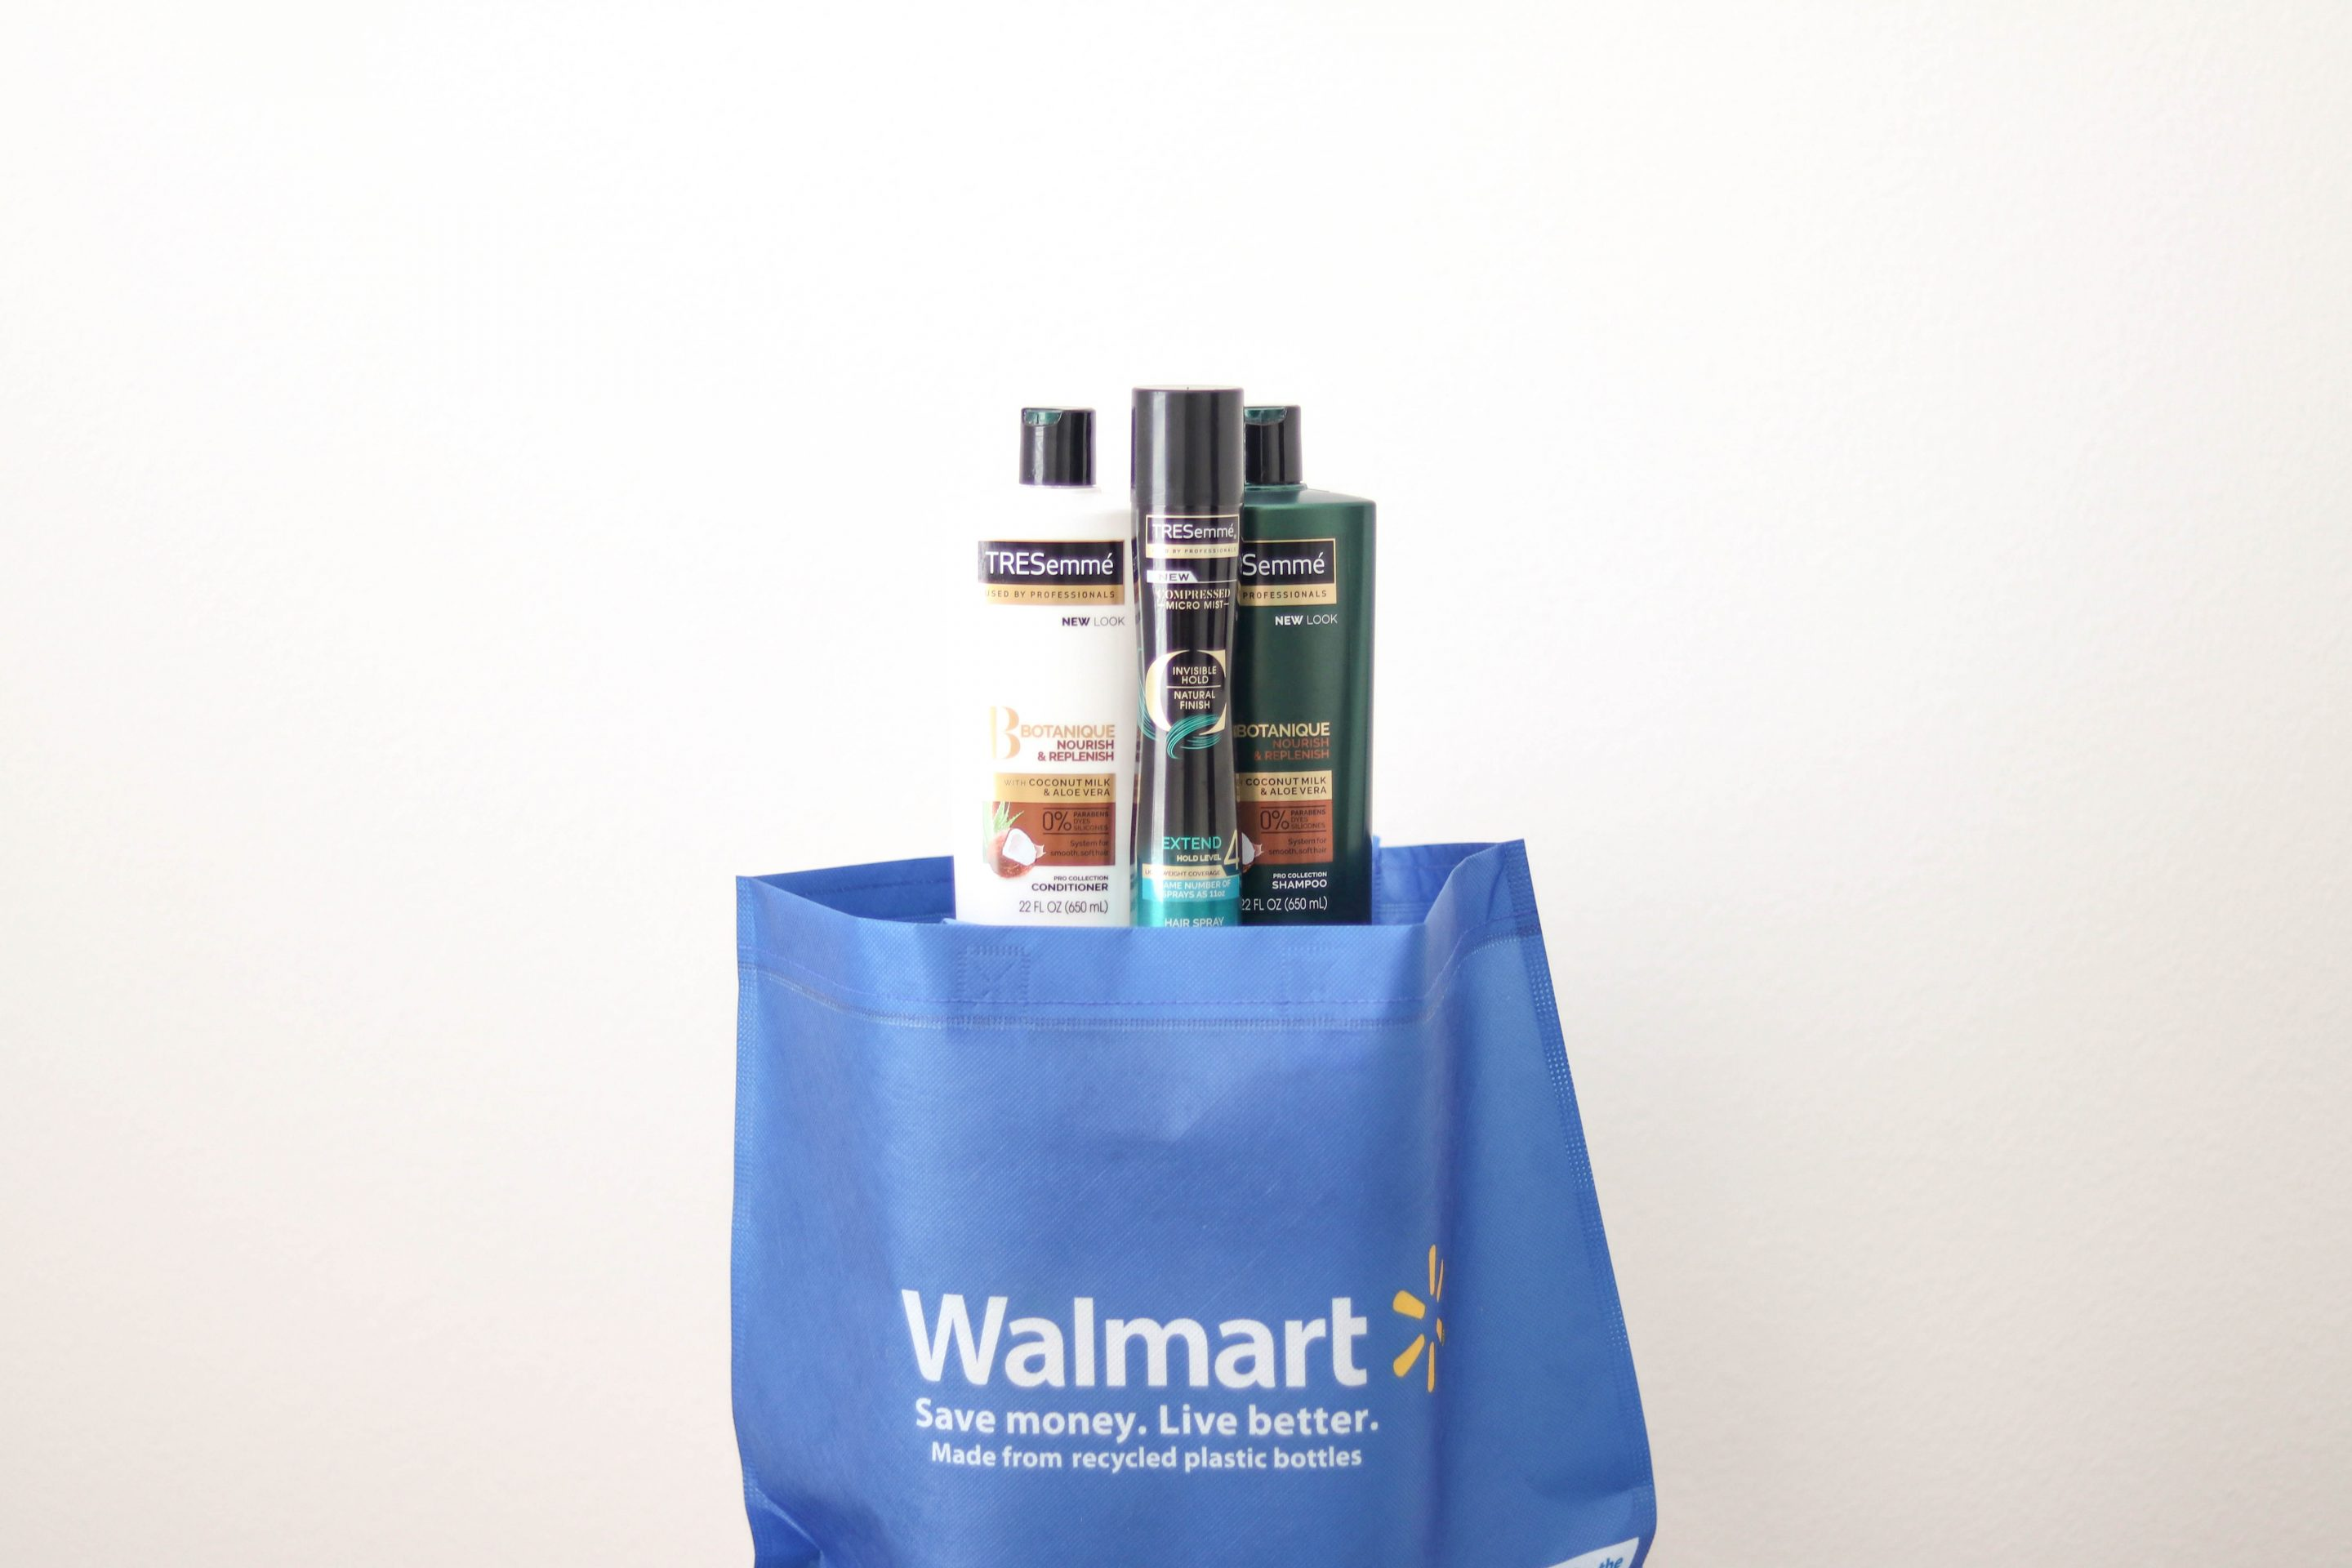 walmart reusable shopping bags